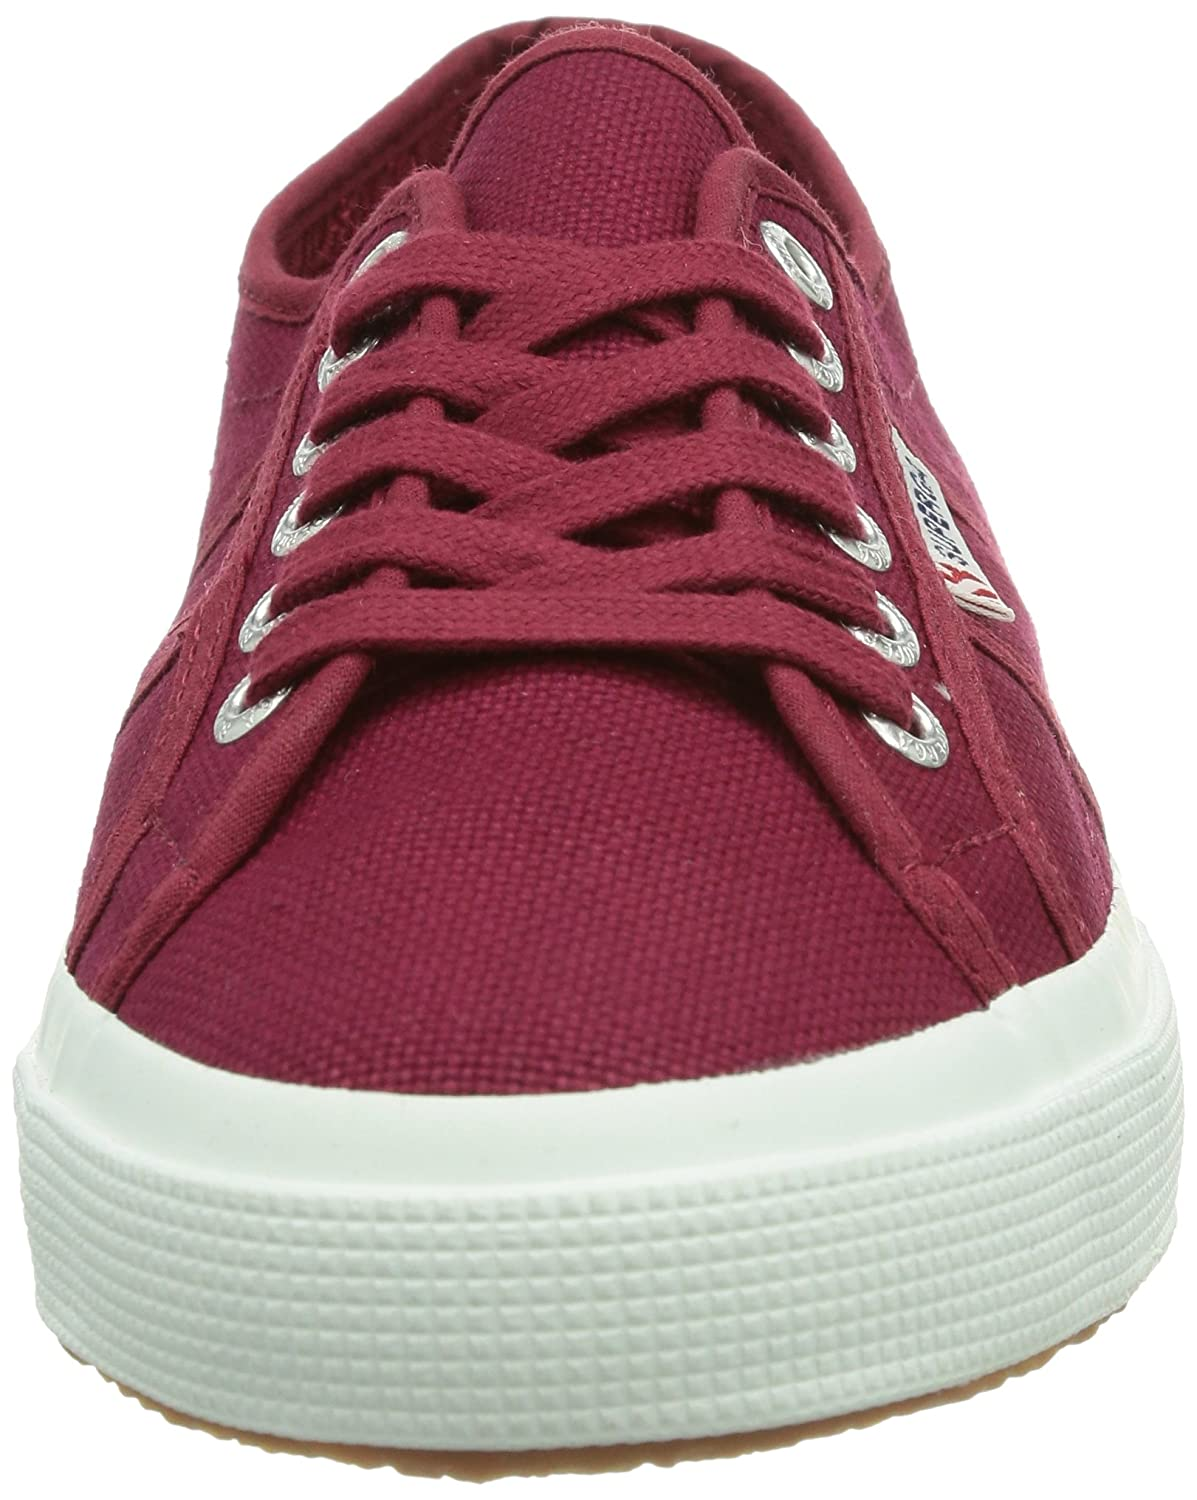 Amazon.com | Superga 2750 Cotu Classic, Unisex Adults Low-Top Sneakers, Red (Scarlet S104), 8.5 UK (42.5 EU) | Fashion Sneakers